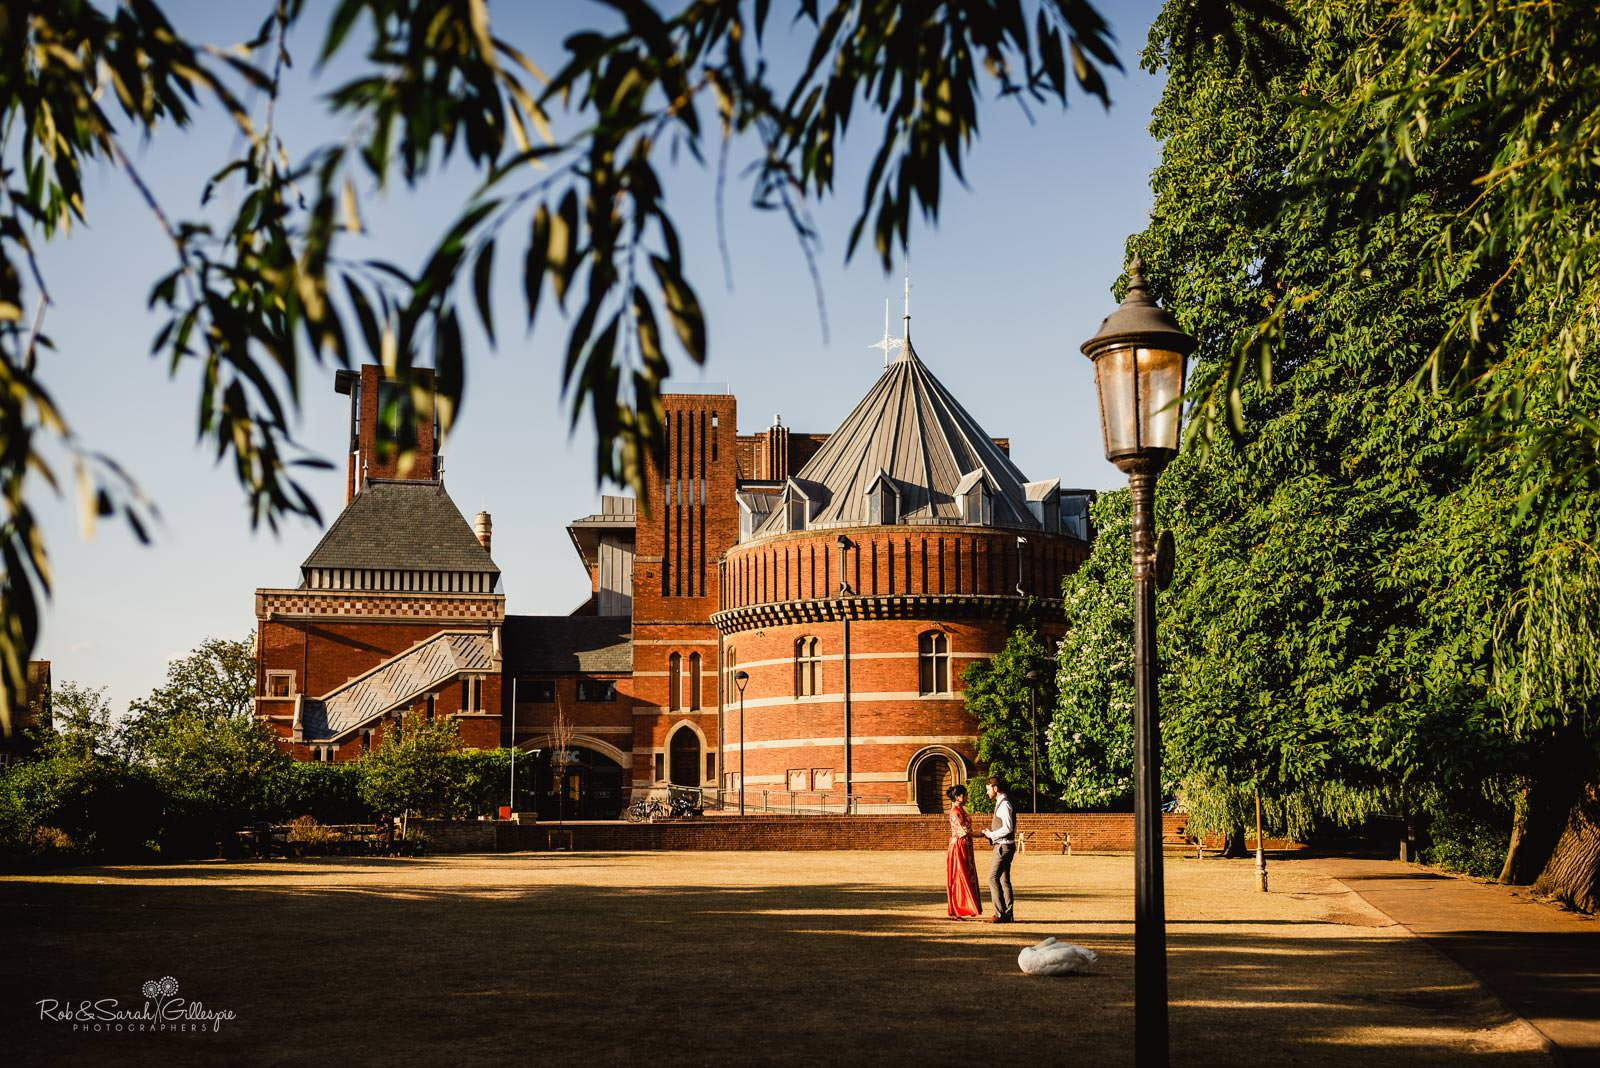 Wedding photography at RSC in Stratford upon Avon